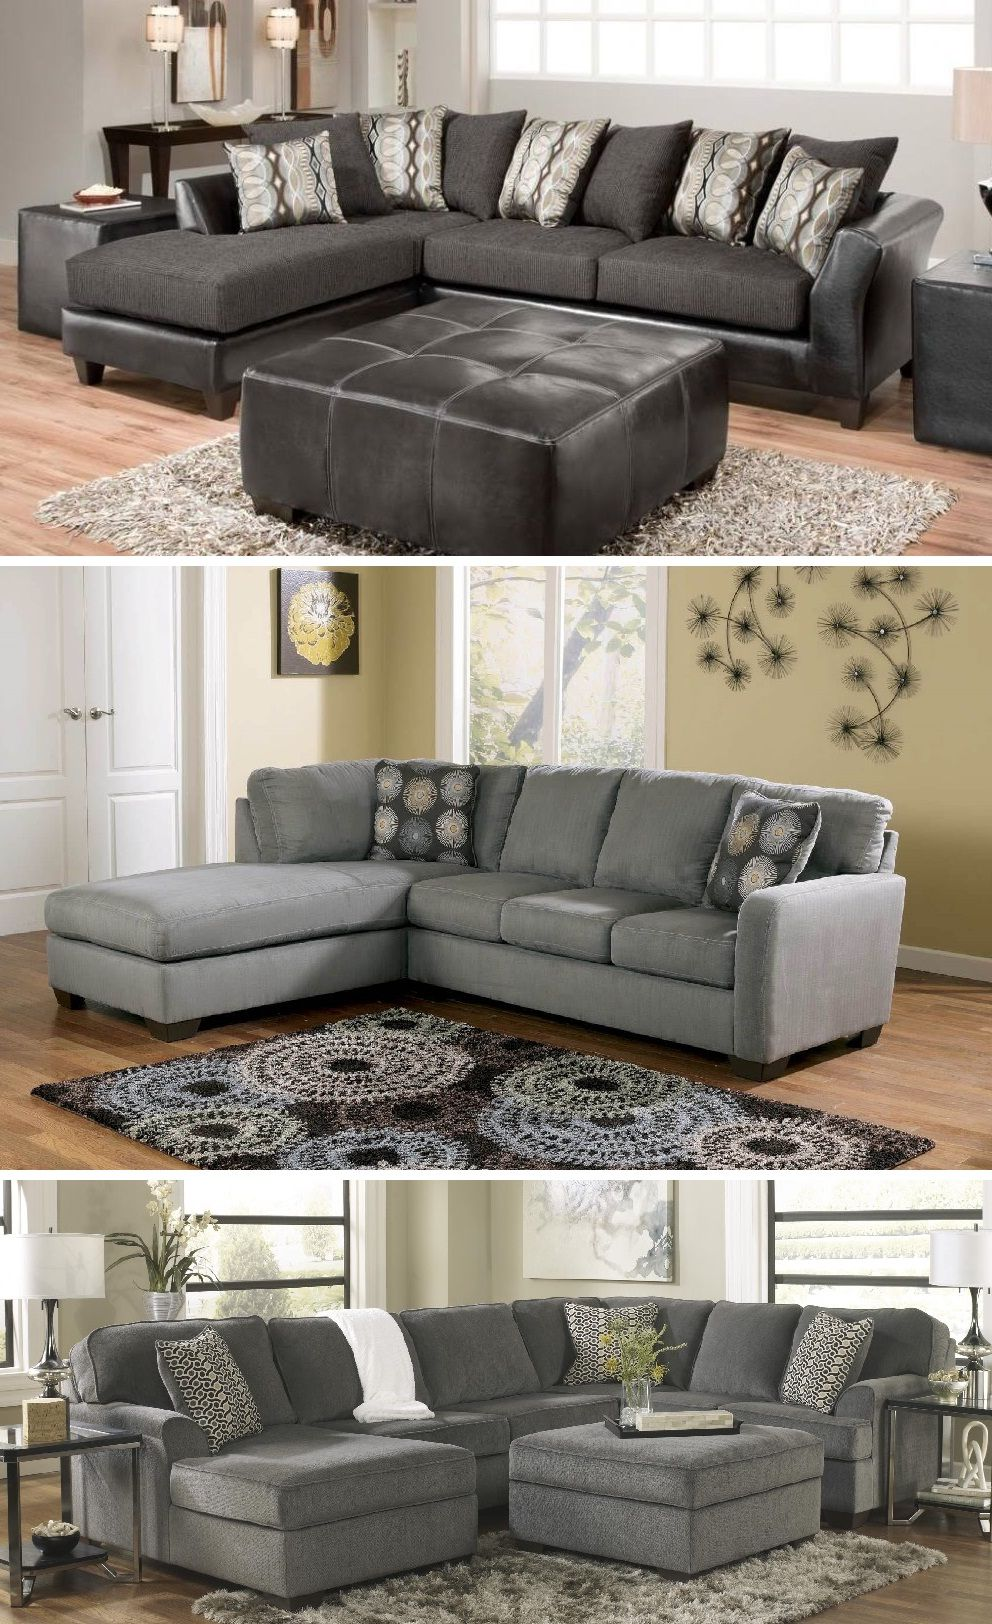 Charcoal Gray Sectional Sofa With Chaise Lounge Couches And